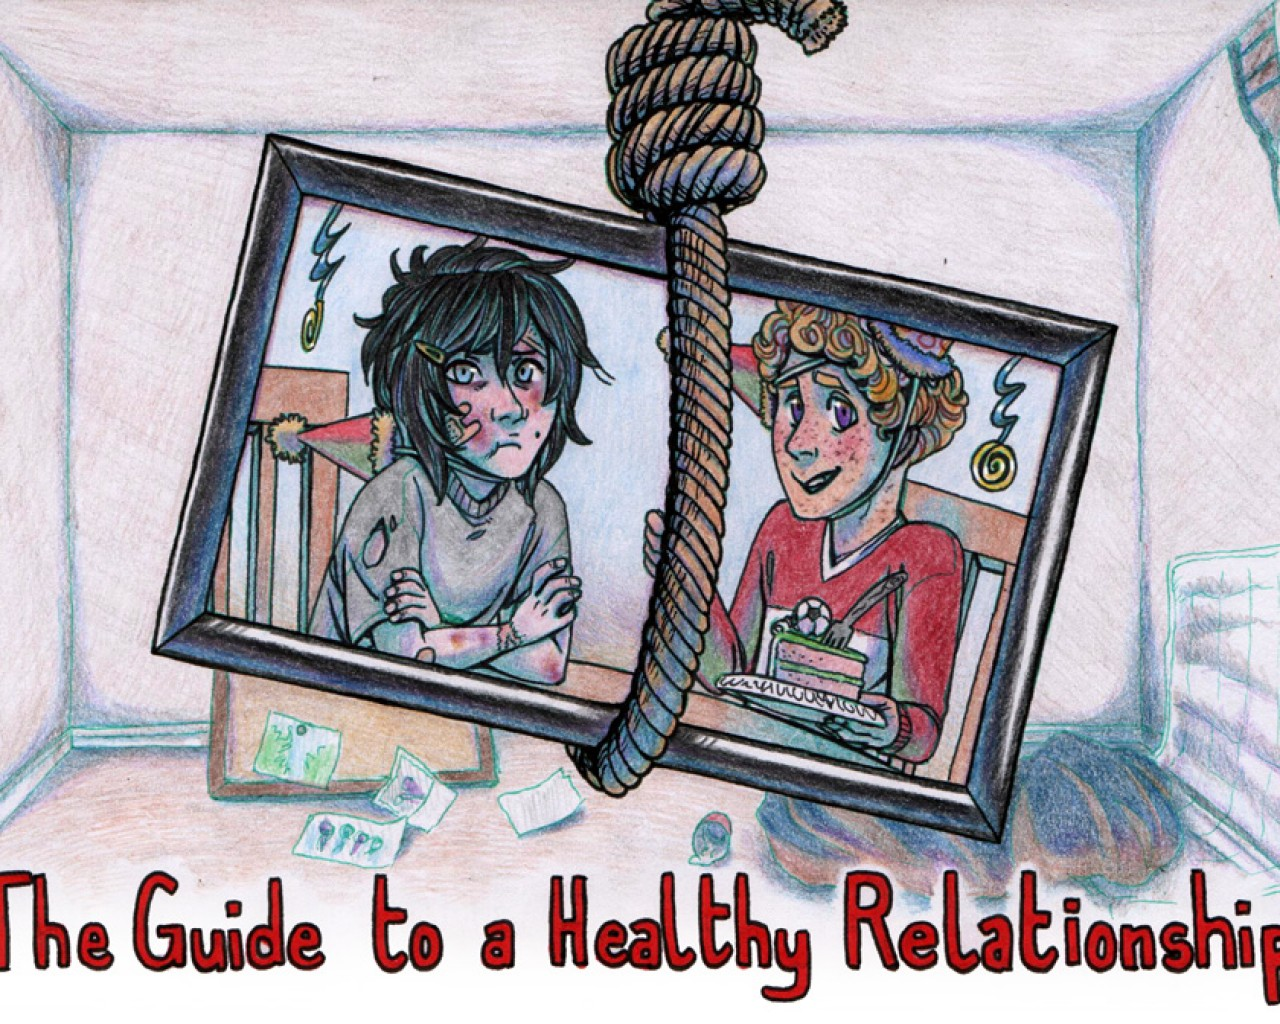 Poster Image for The Guide to a Healthy Relationship